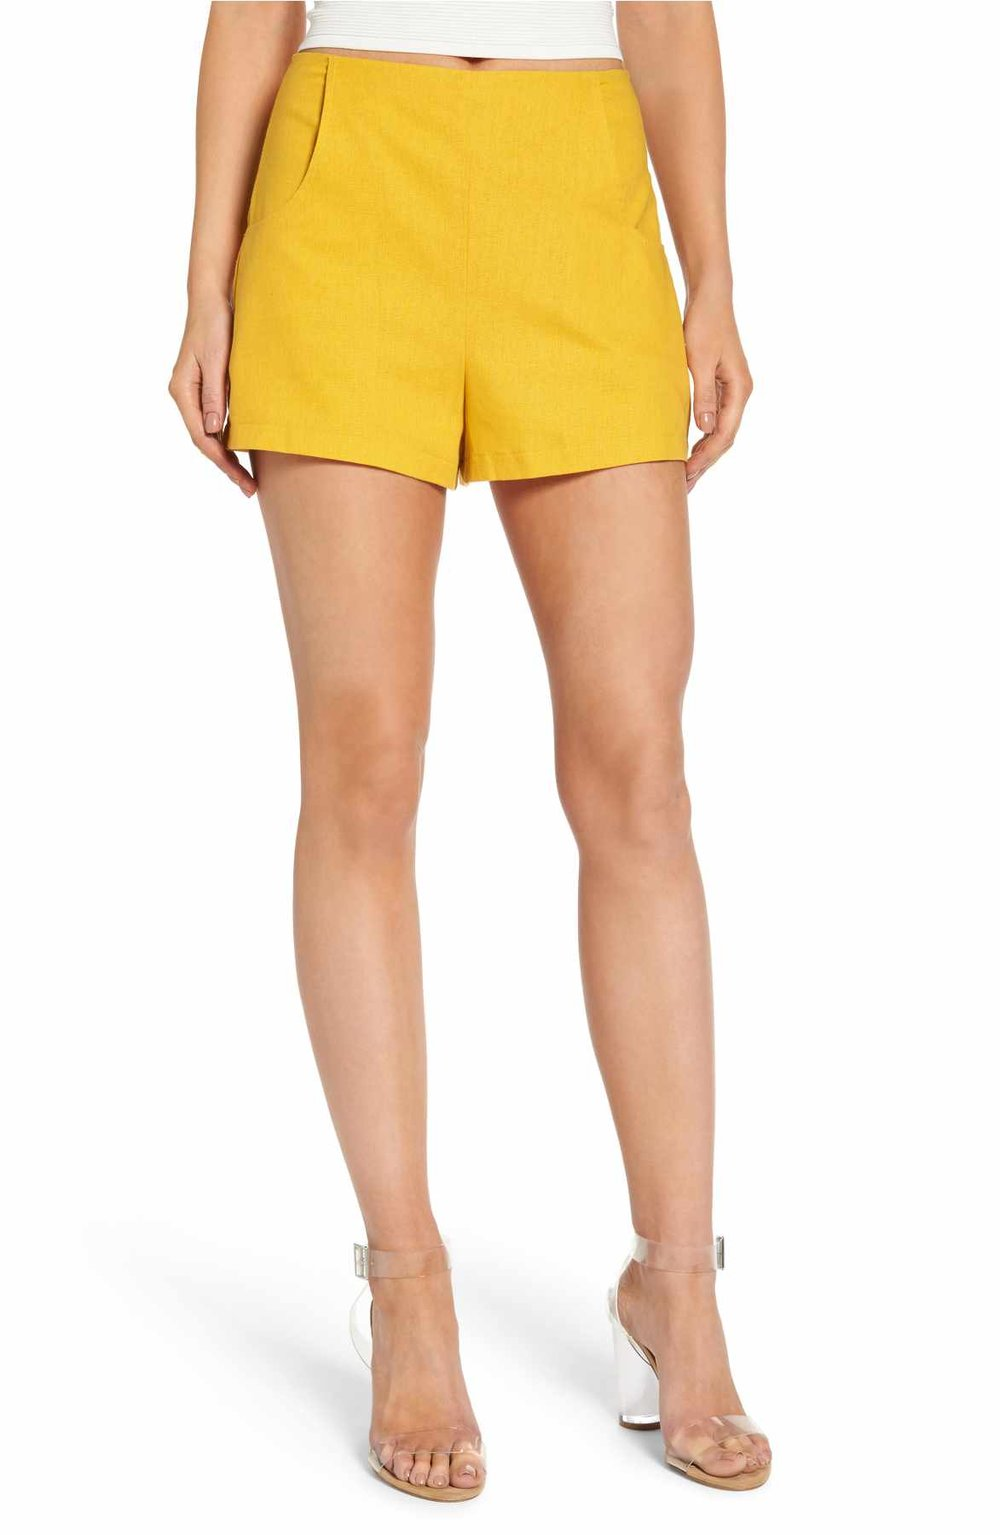 Leith high waist shorts in yellow